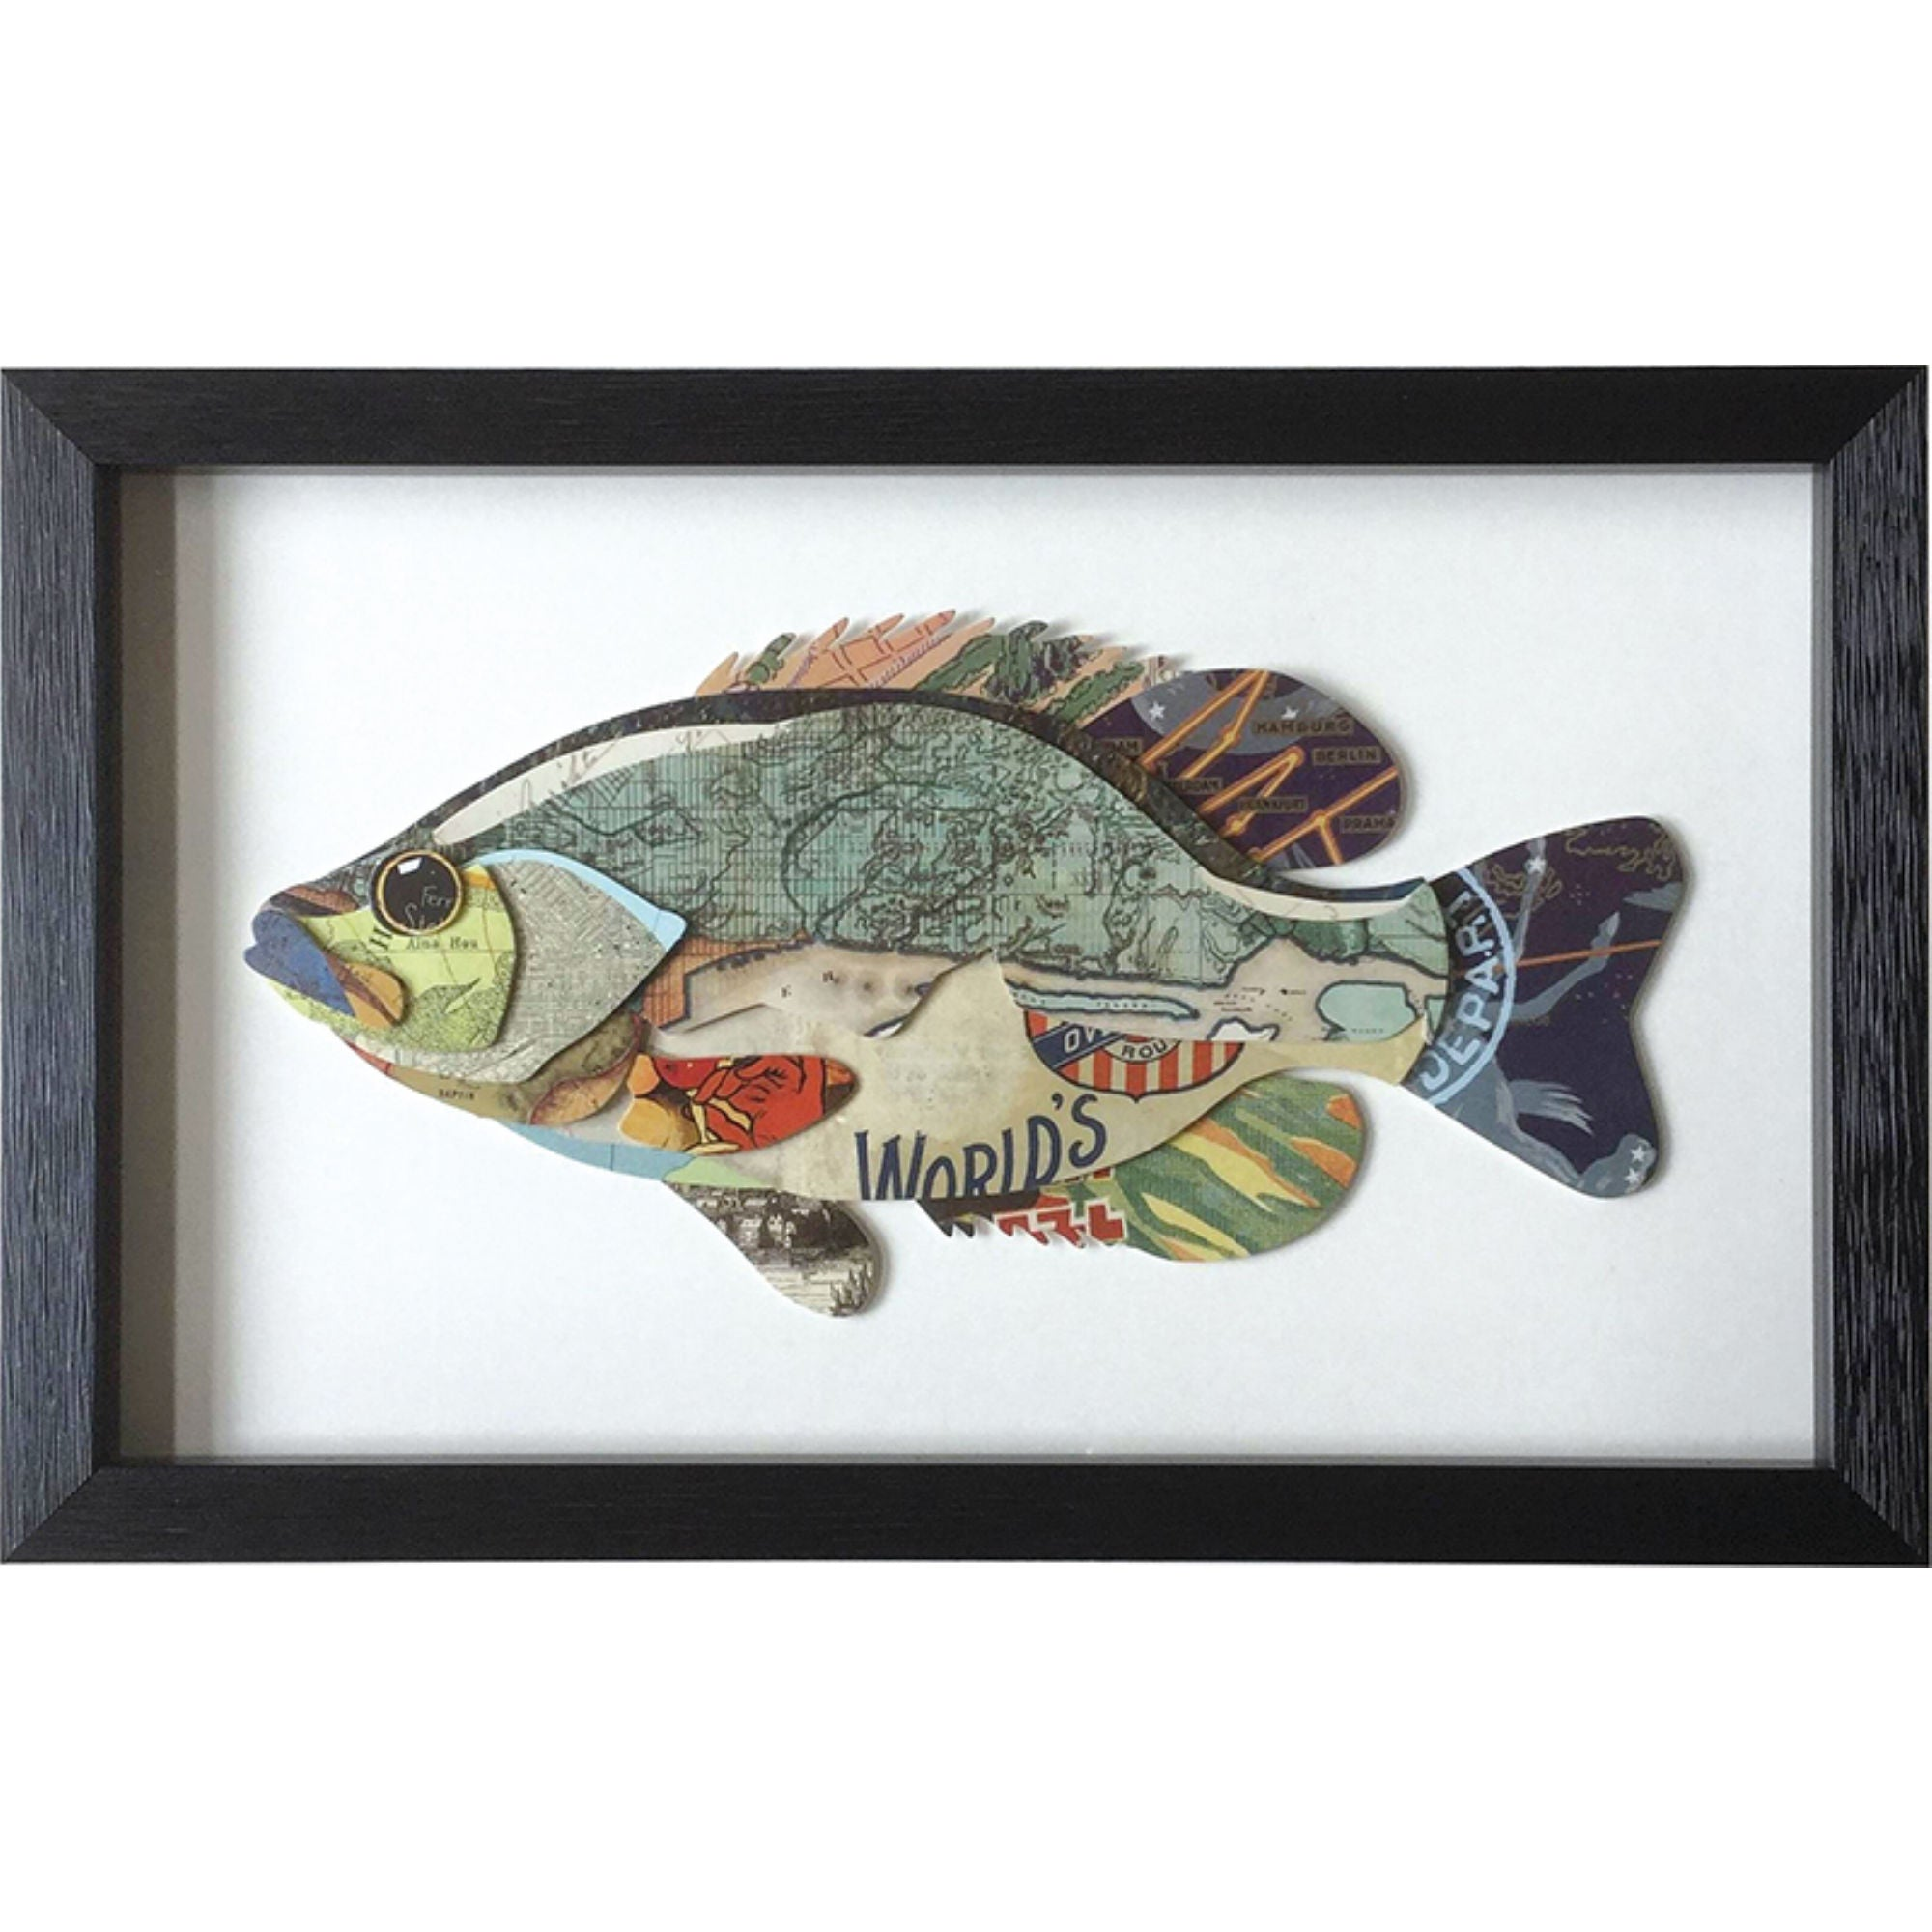 Framed Collage Picture of a Fish